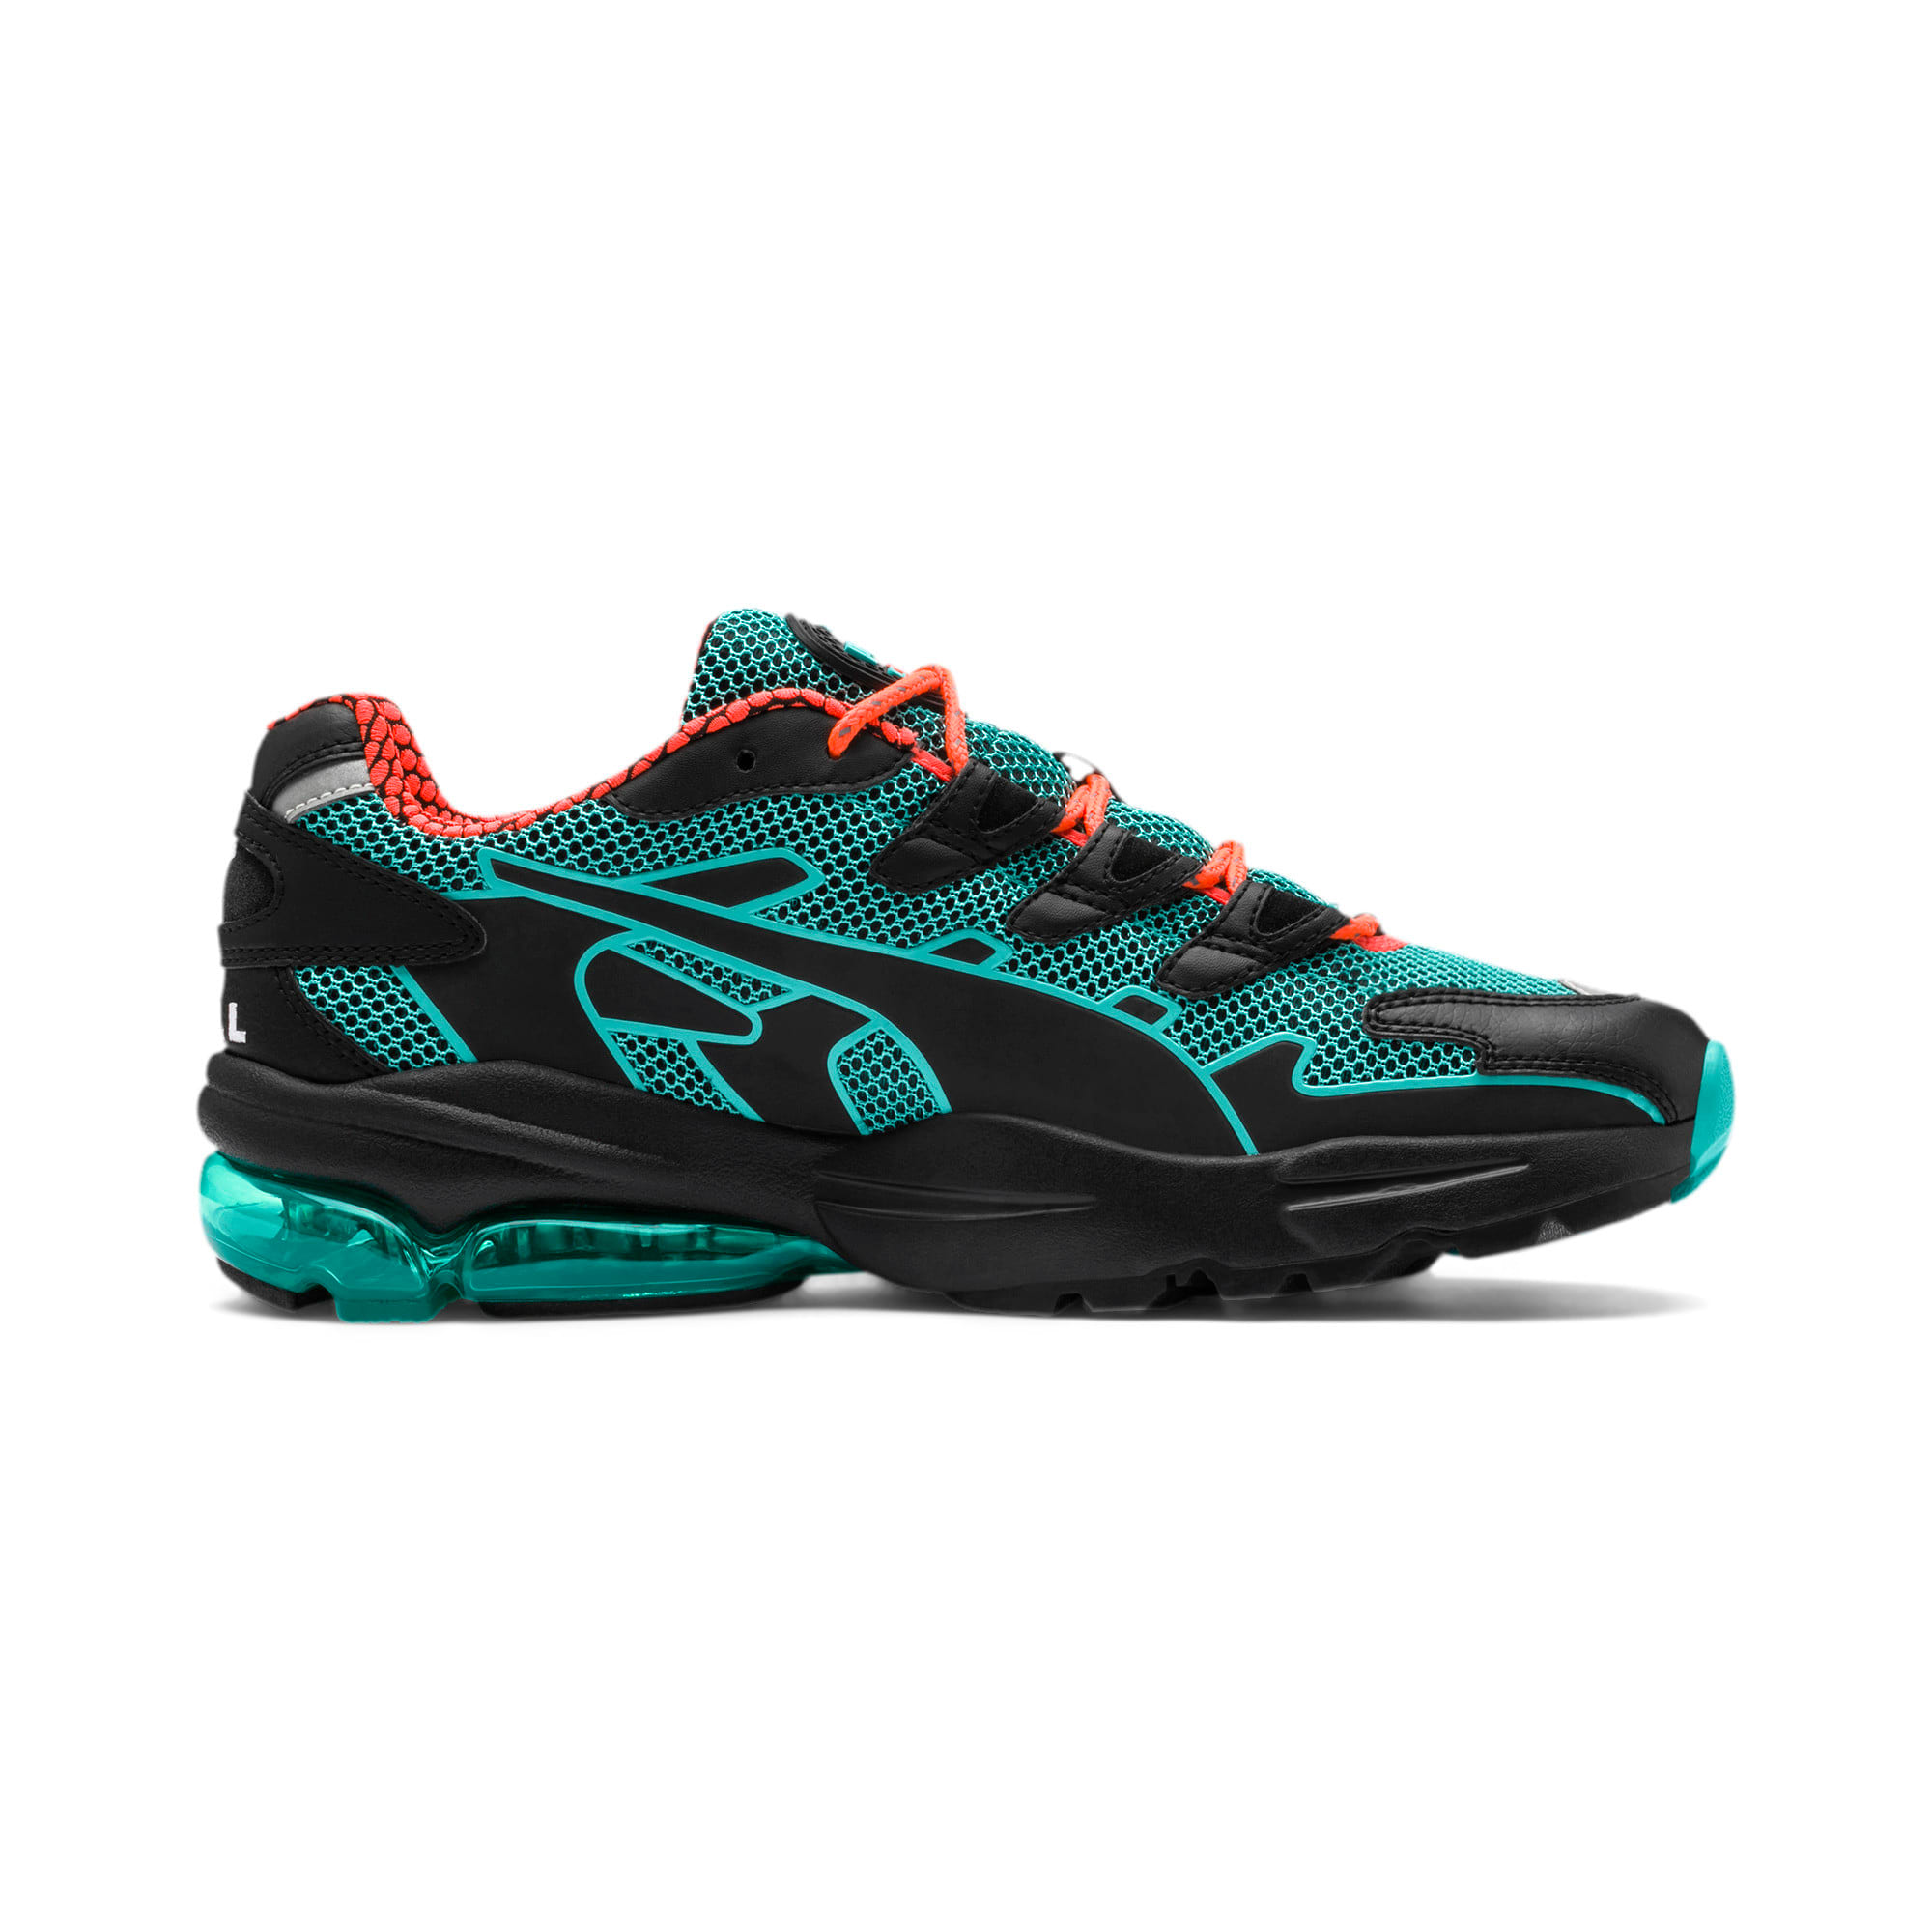 Thumbnail 6 of CELL Alien Kotto Trainers, Puma Black-Blue Turquoise, medium